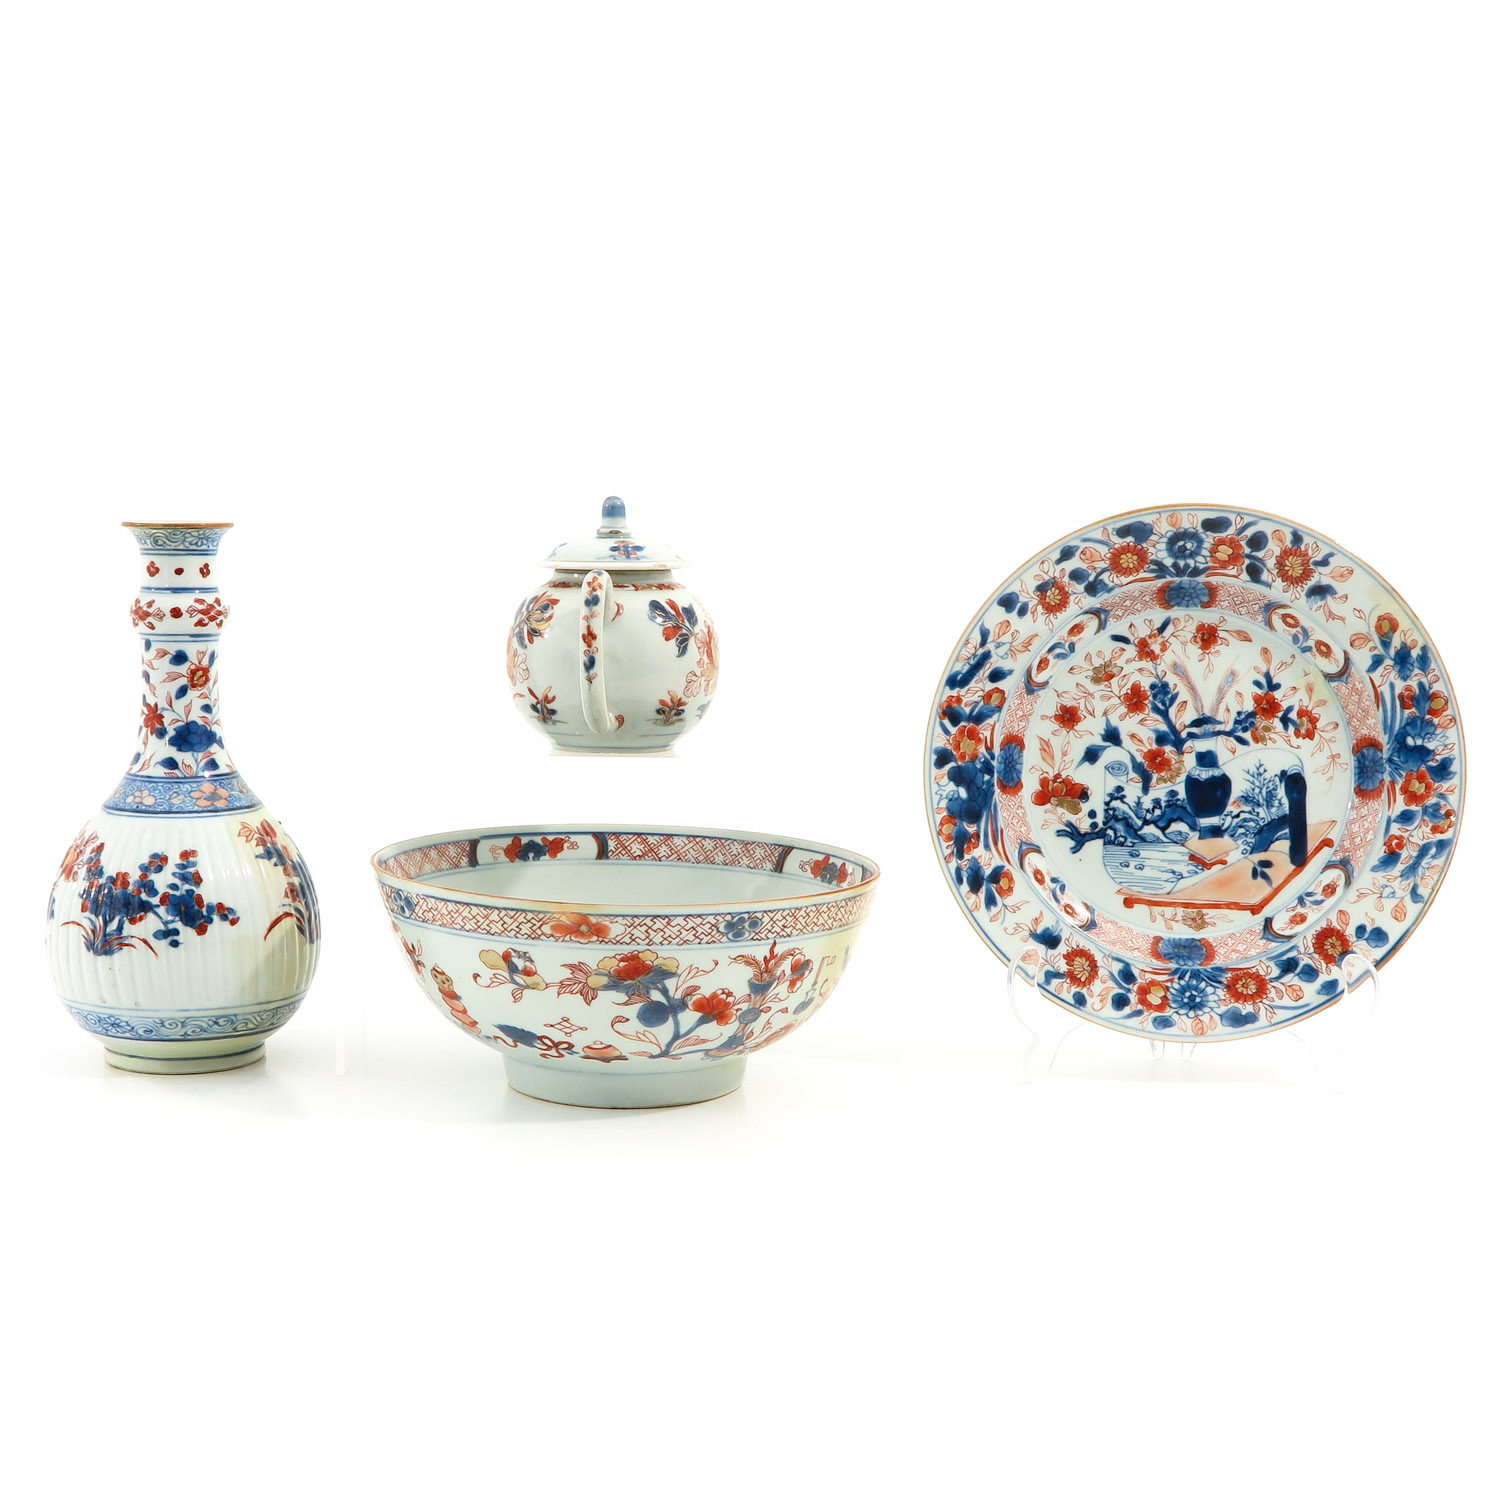 A Collection of Imari - Image 2 of 10